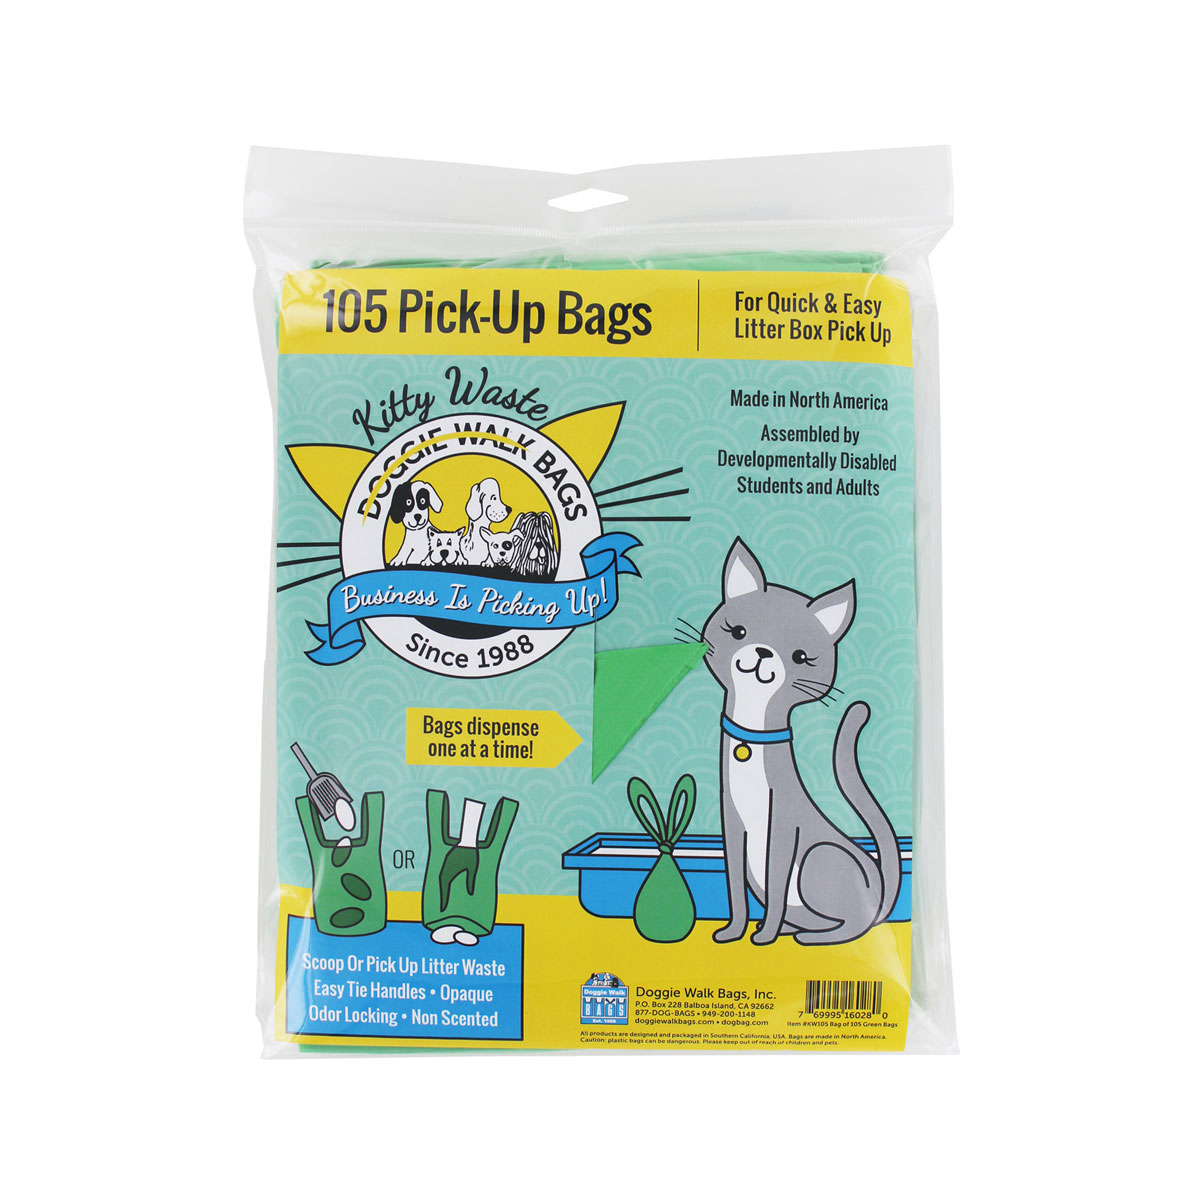 Doggie Walk Bags- Green Kitty Bags